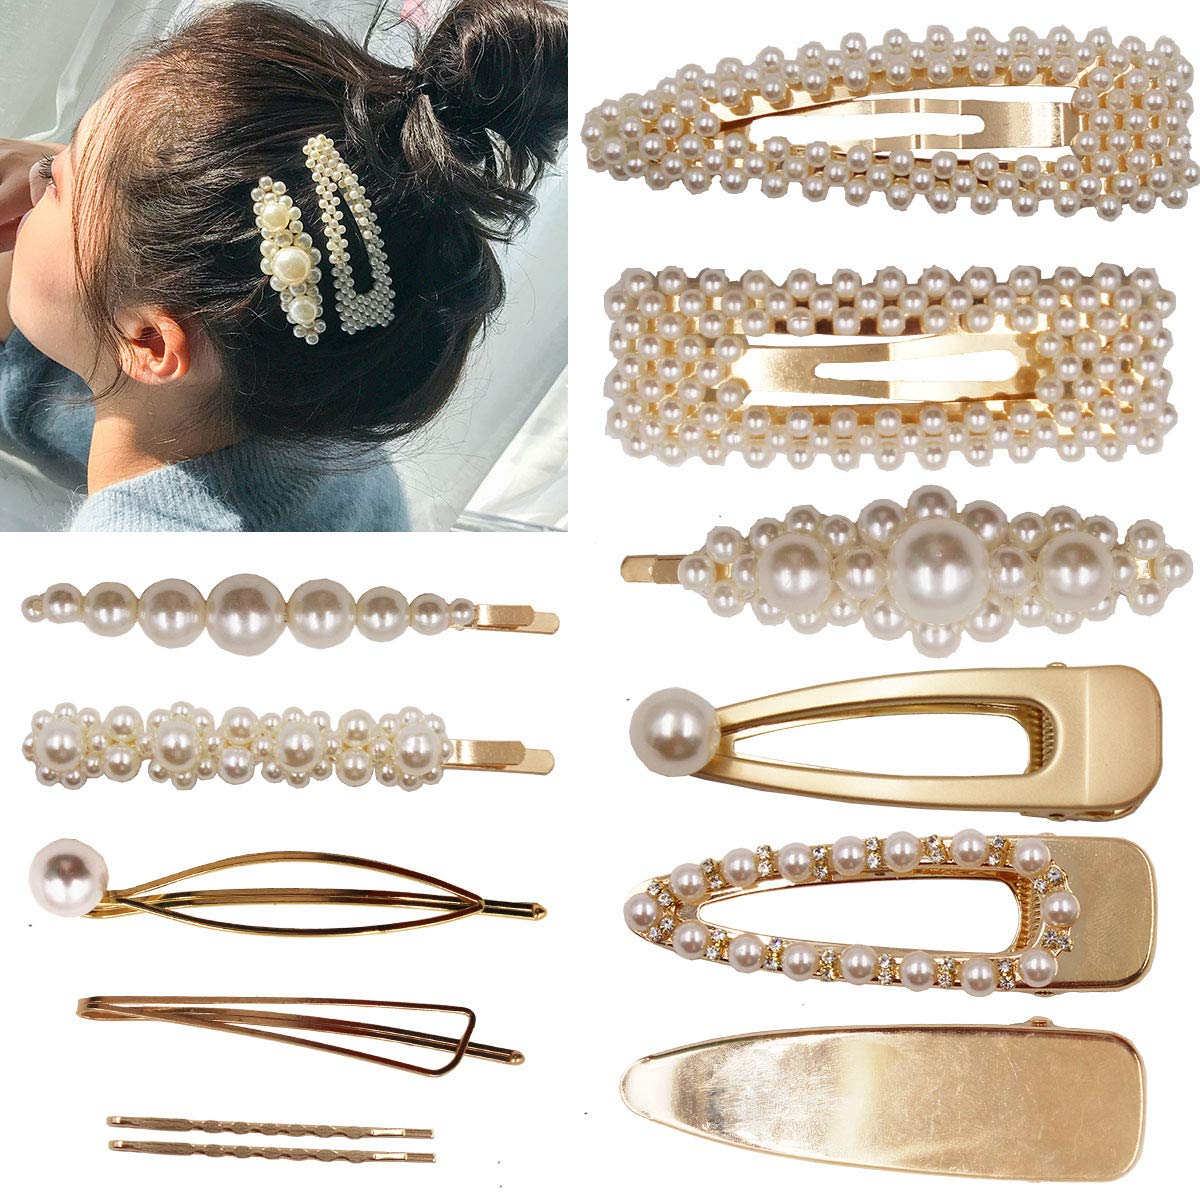 12PCS Elegant Hairpins Hair Accessory for Girls Women Lady Bridal Weeding White Pearl Jewelry Flower Hair Clips Pins Barrettes (Gold Hair Clips)